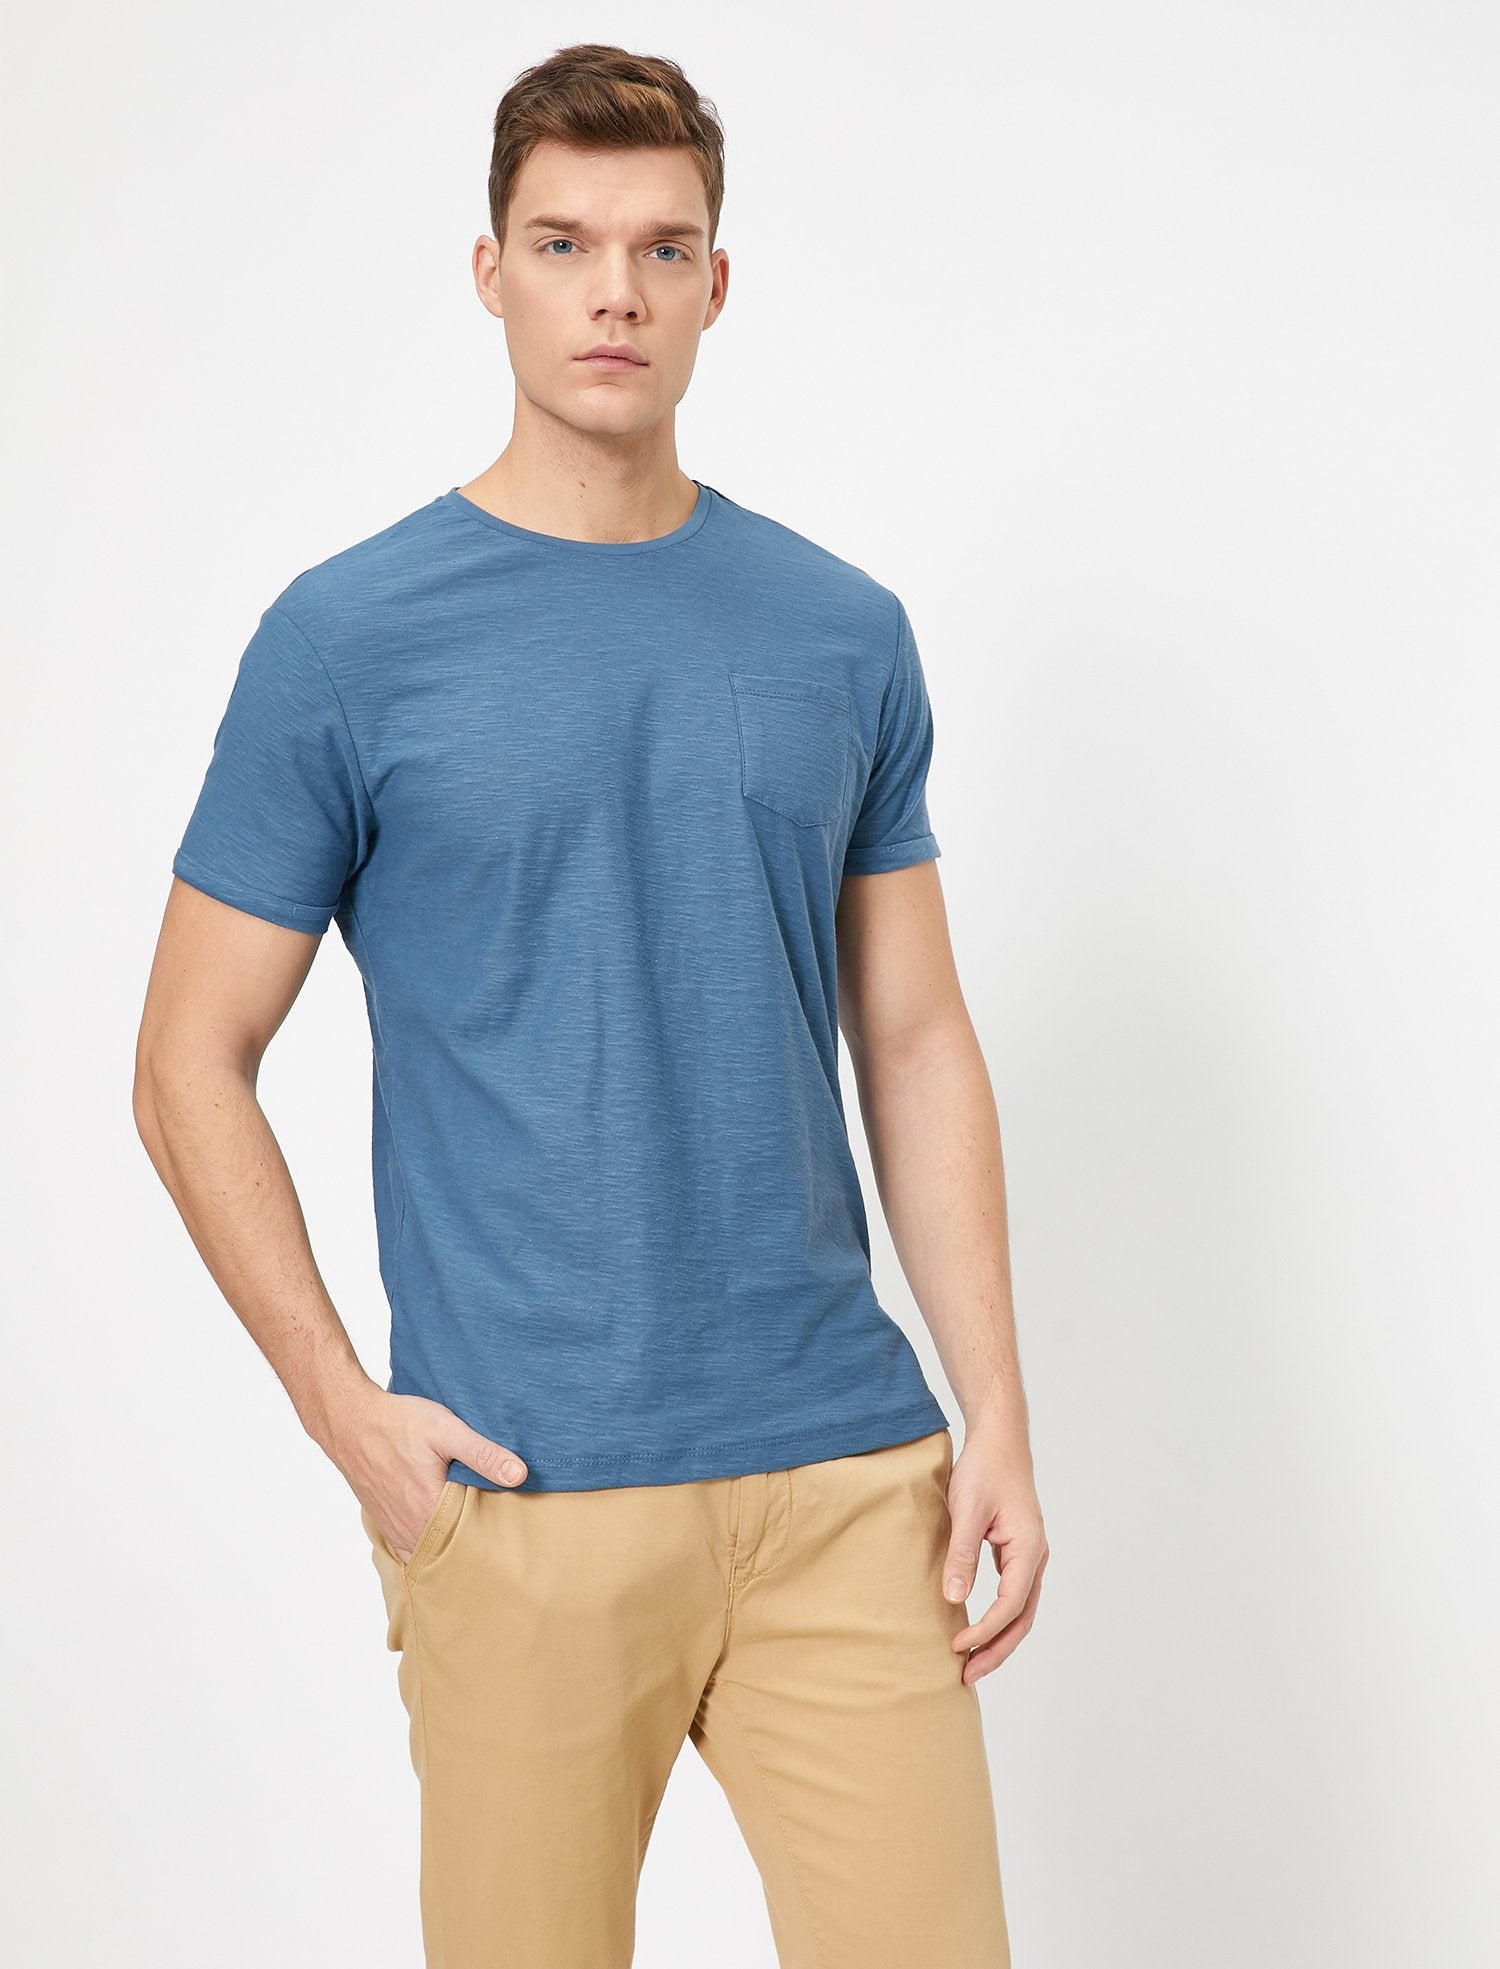 Slubbed Basic Tshirt in Indigo